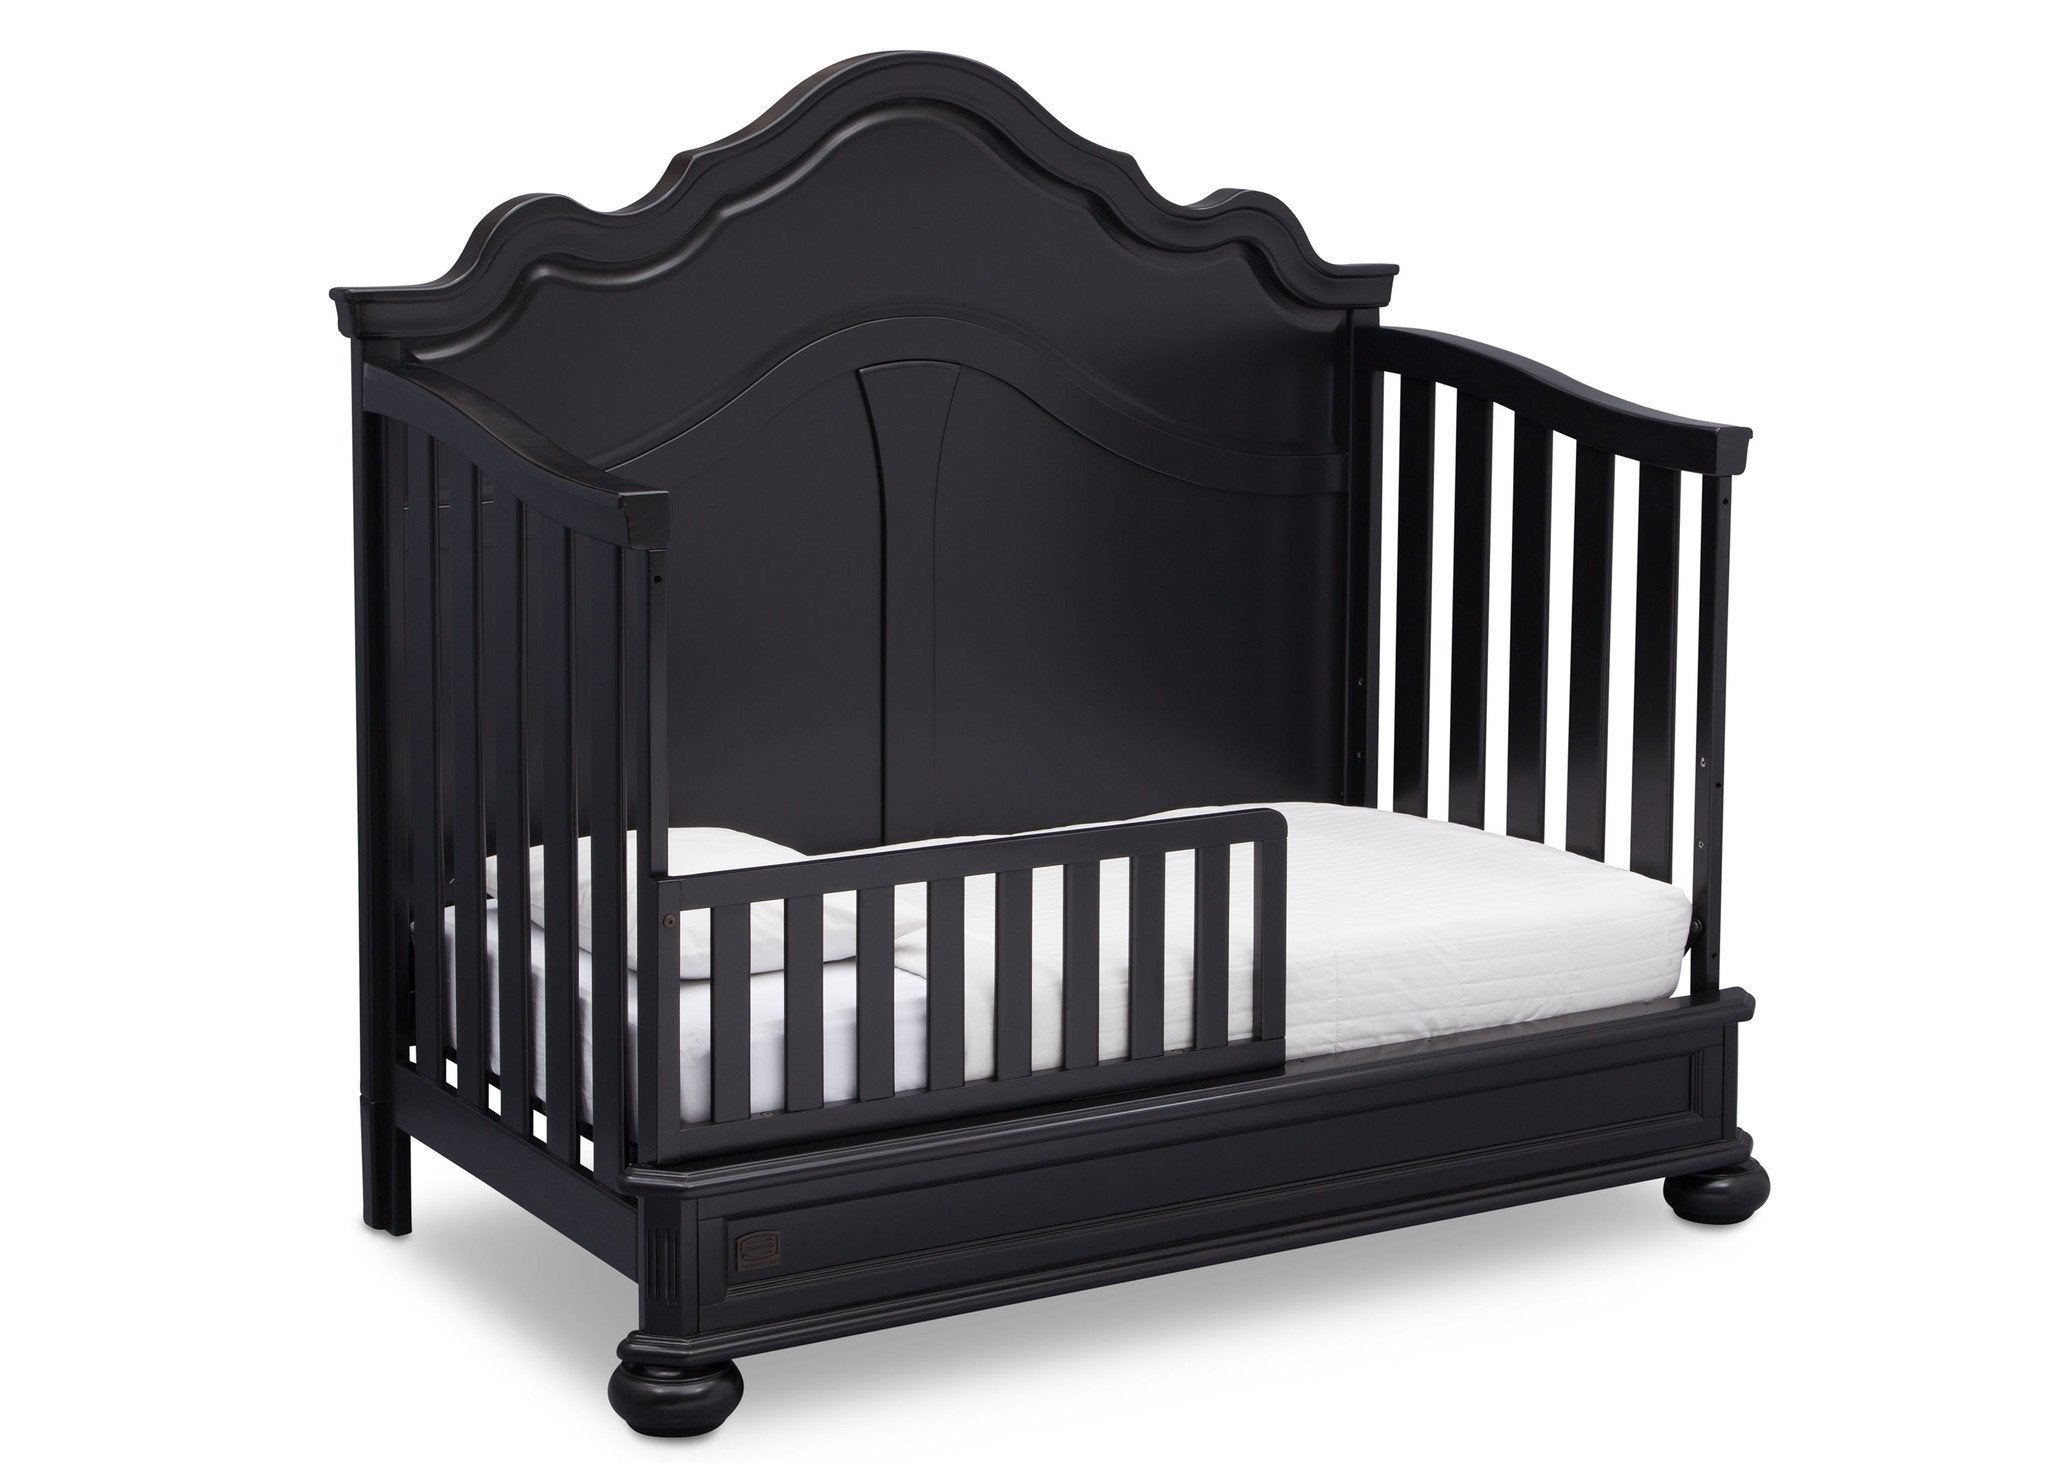 Simmons Kids Ebony (0011) Peyton Crib n' more toddler bed conversion side view b4b